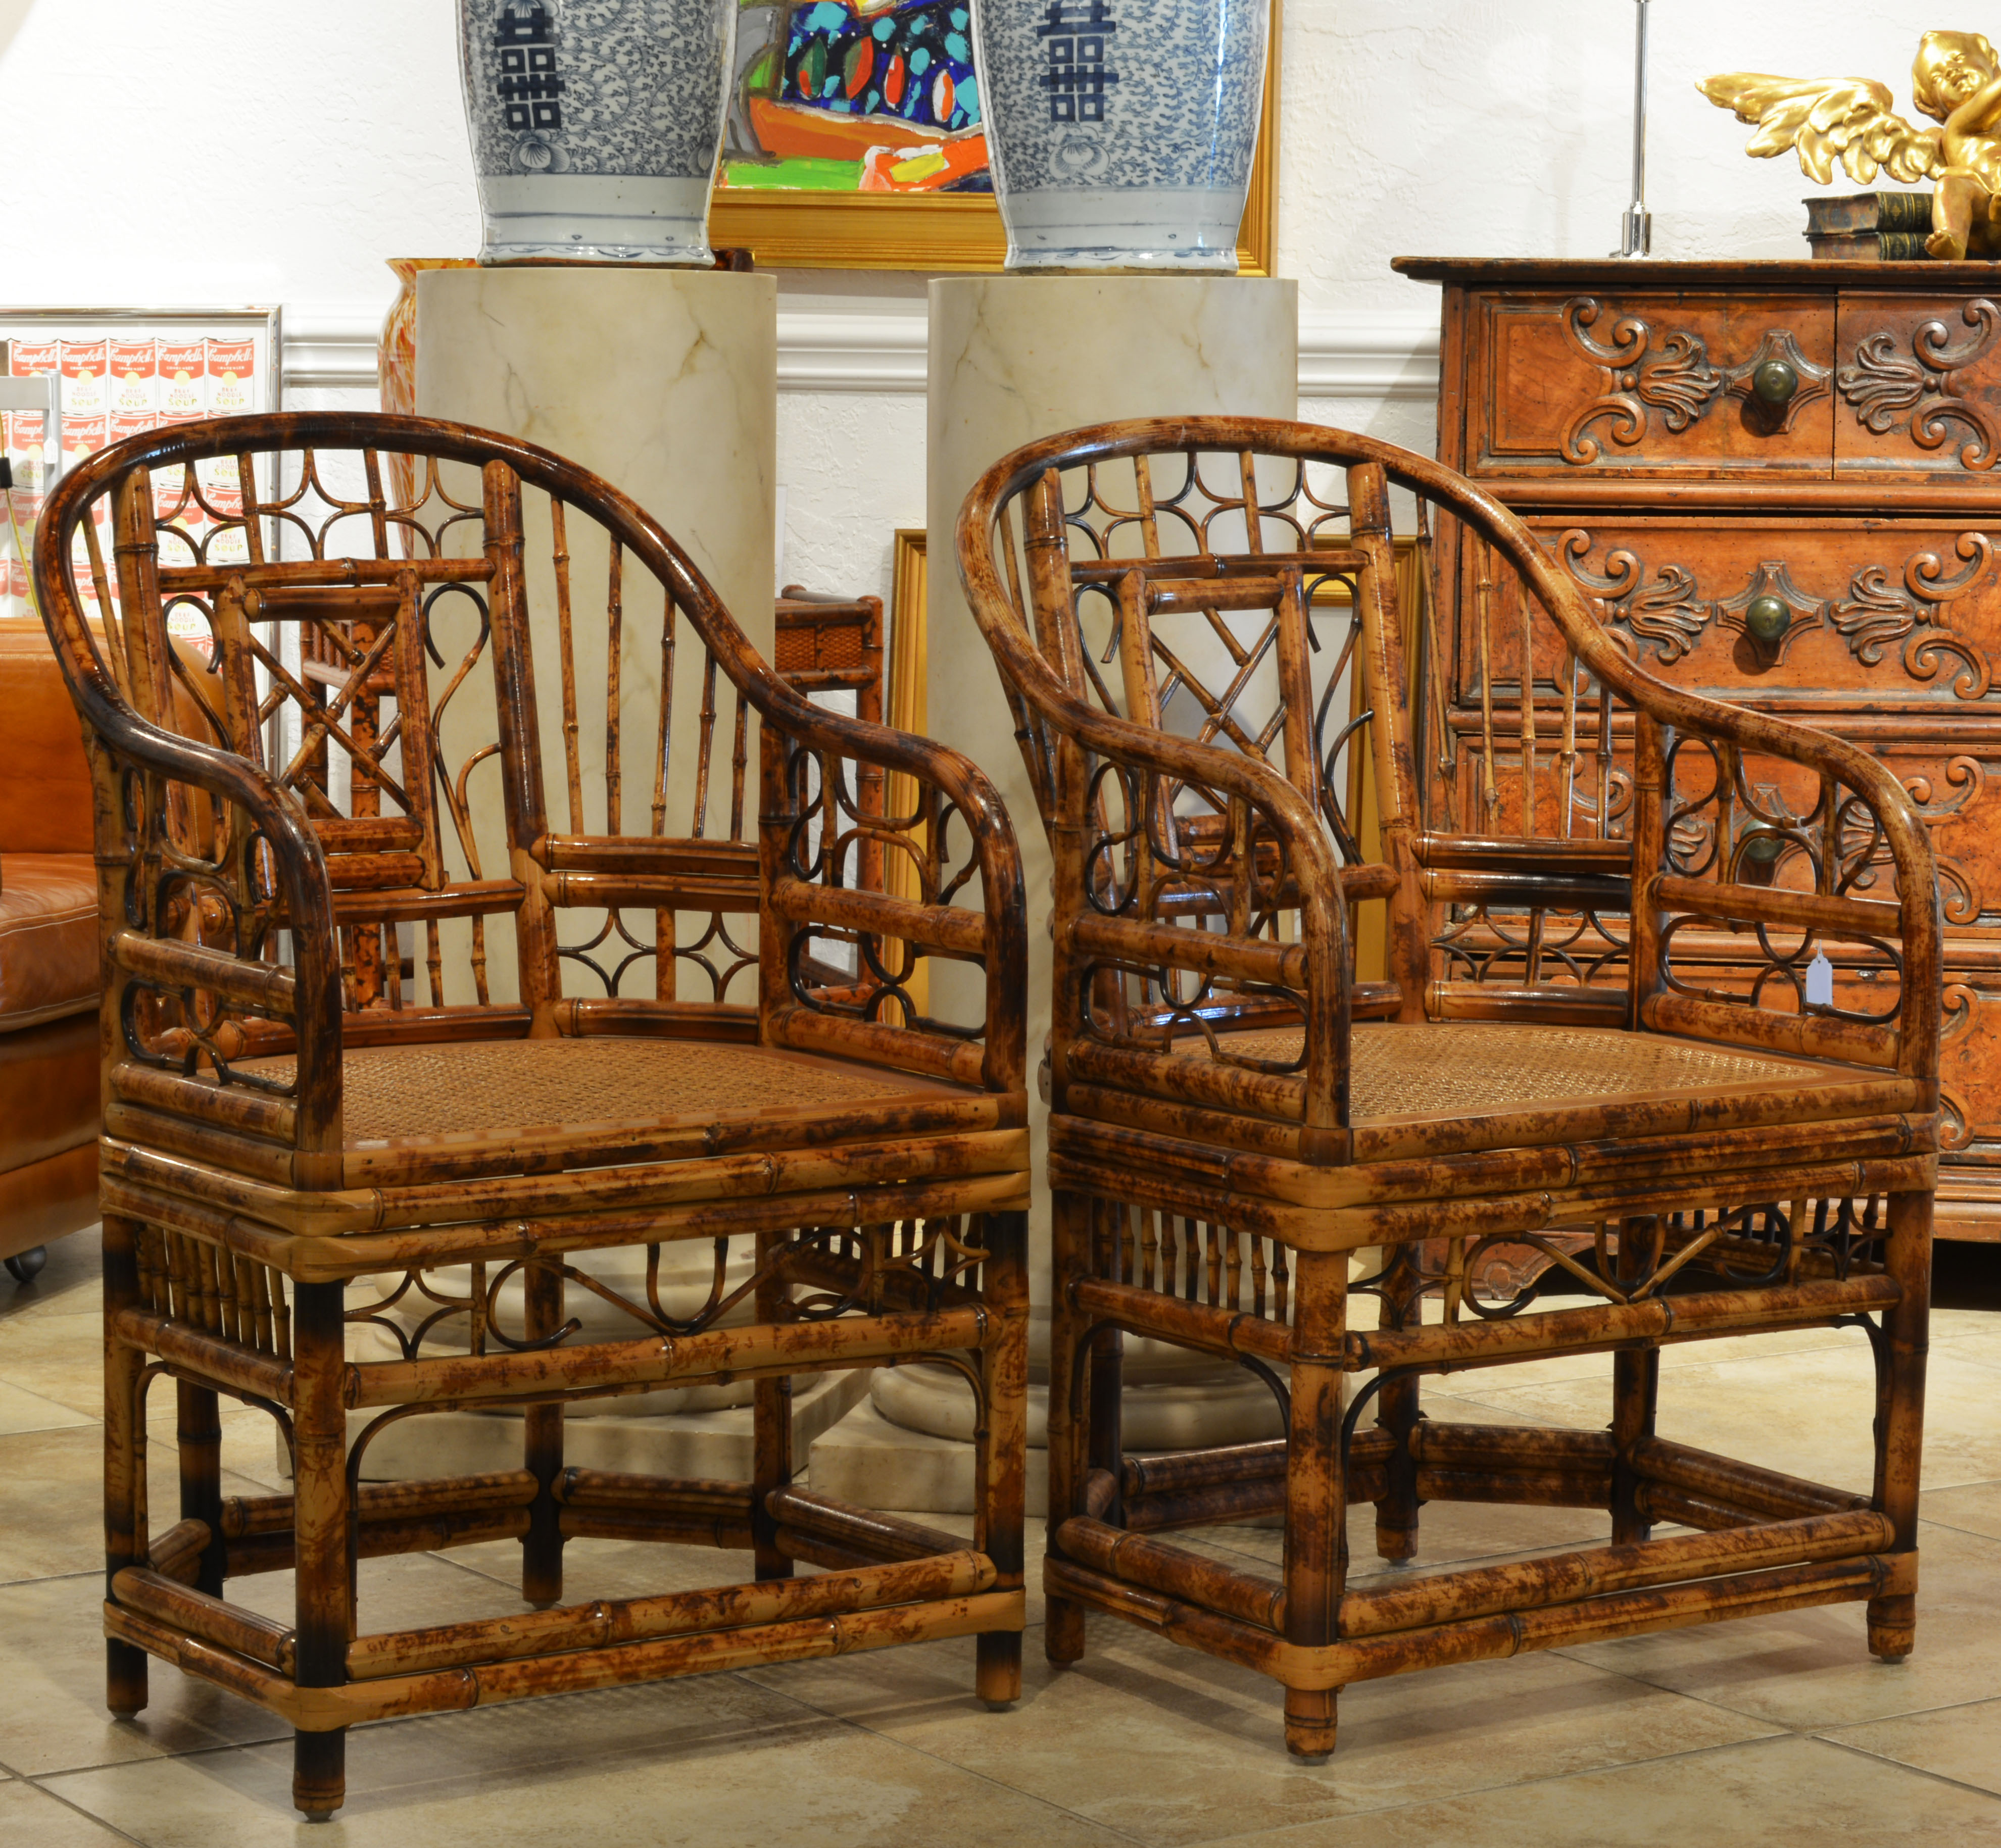 A Pair Of Bamboo Chinoiserie Chippendale Style Arm Chairs With Cane Seats